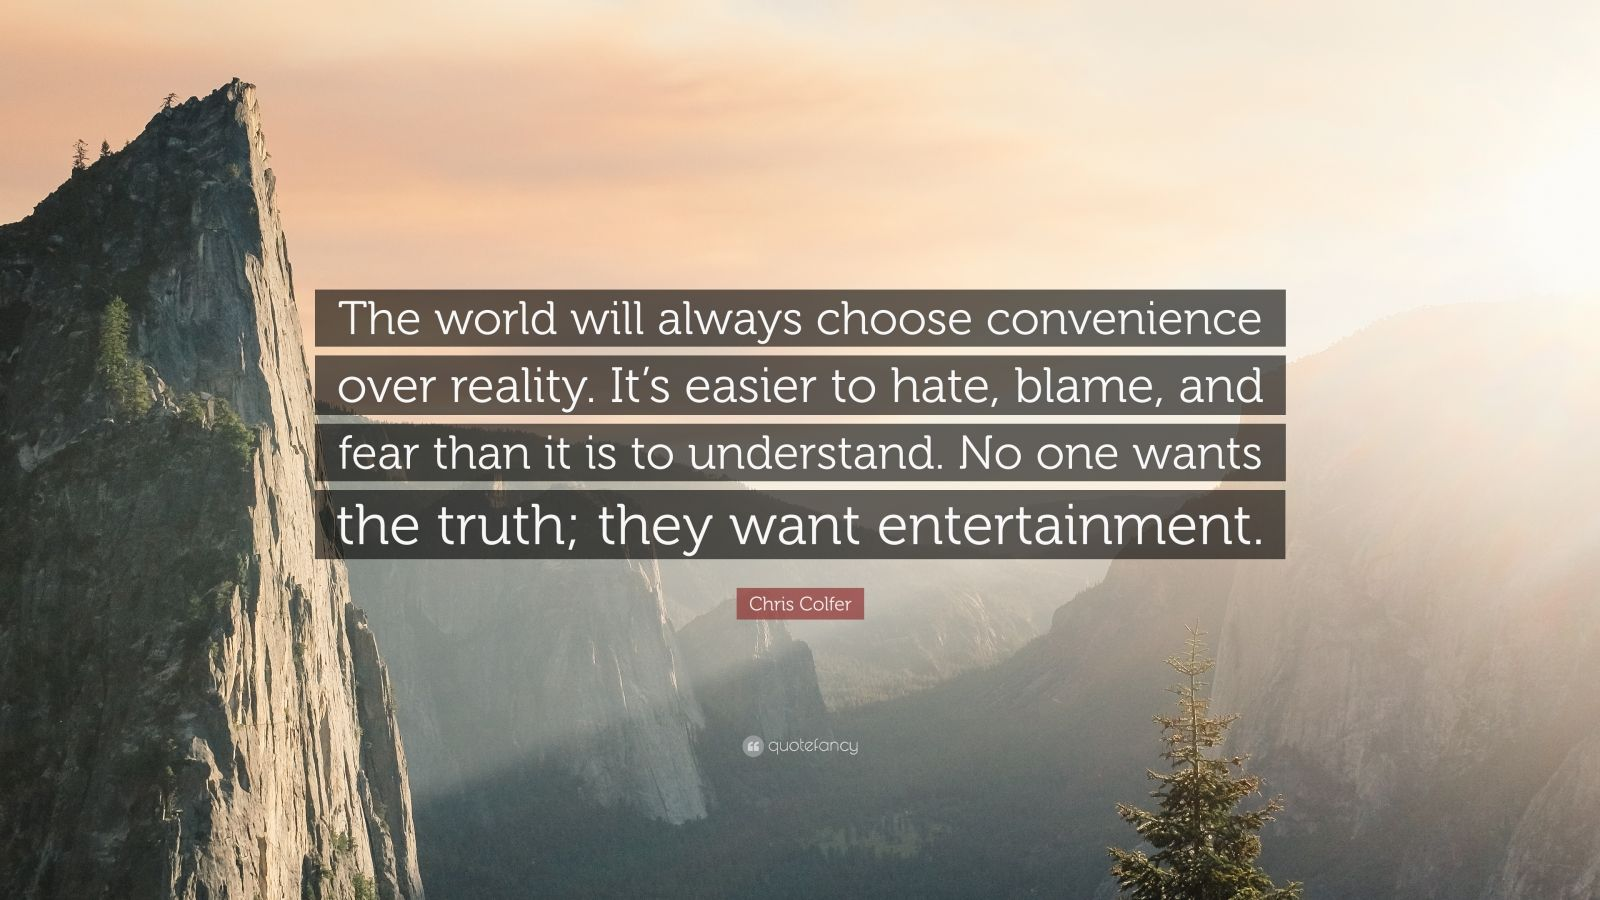 """Chris Colfer Quote: """"The world will always choose convenience over reality. It's easier to hate, blame, and fear than it is to understand. No one wants the truth; they want entertainment."""""""